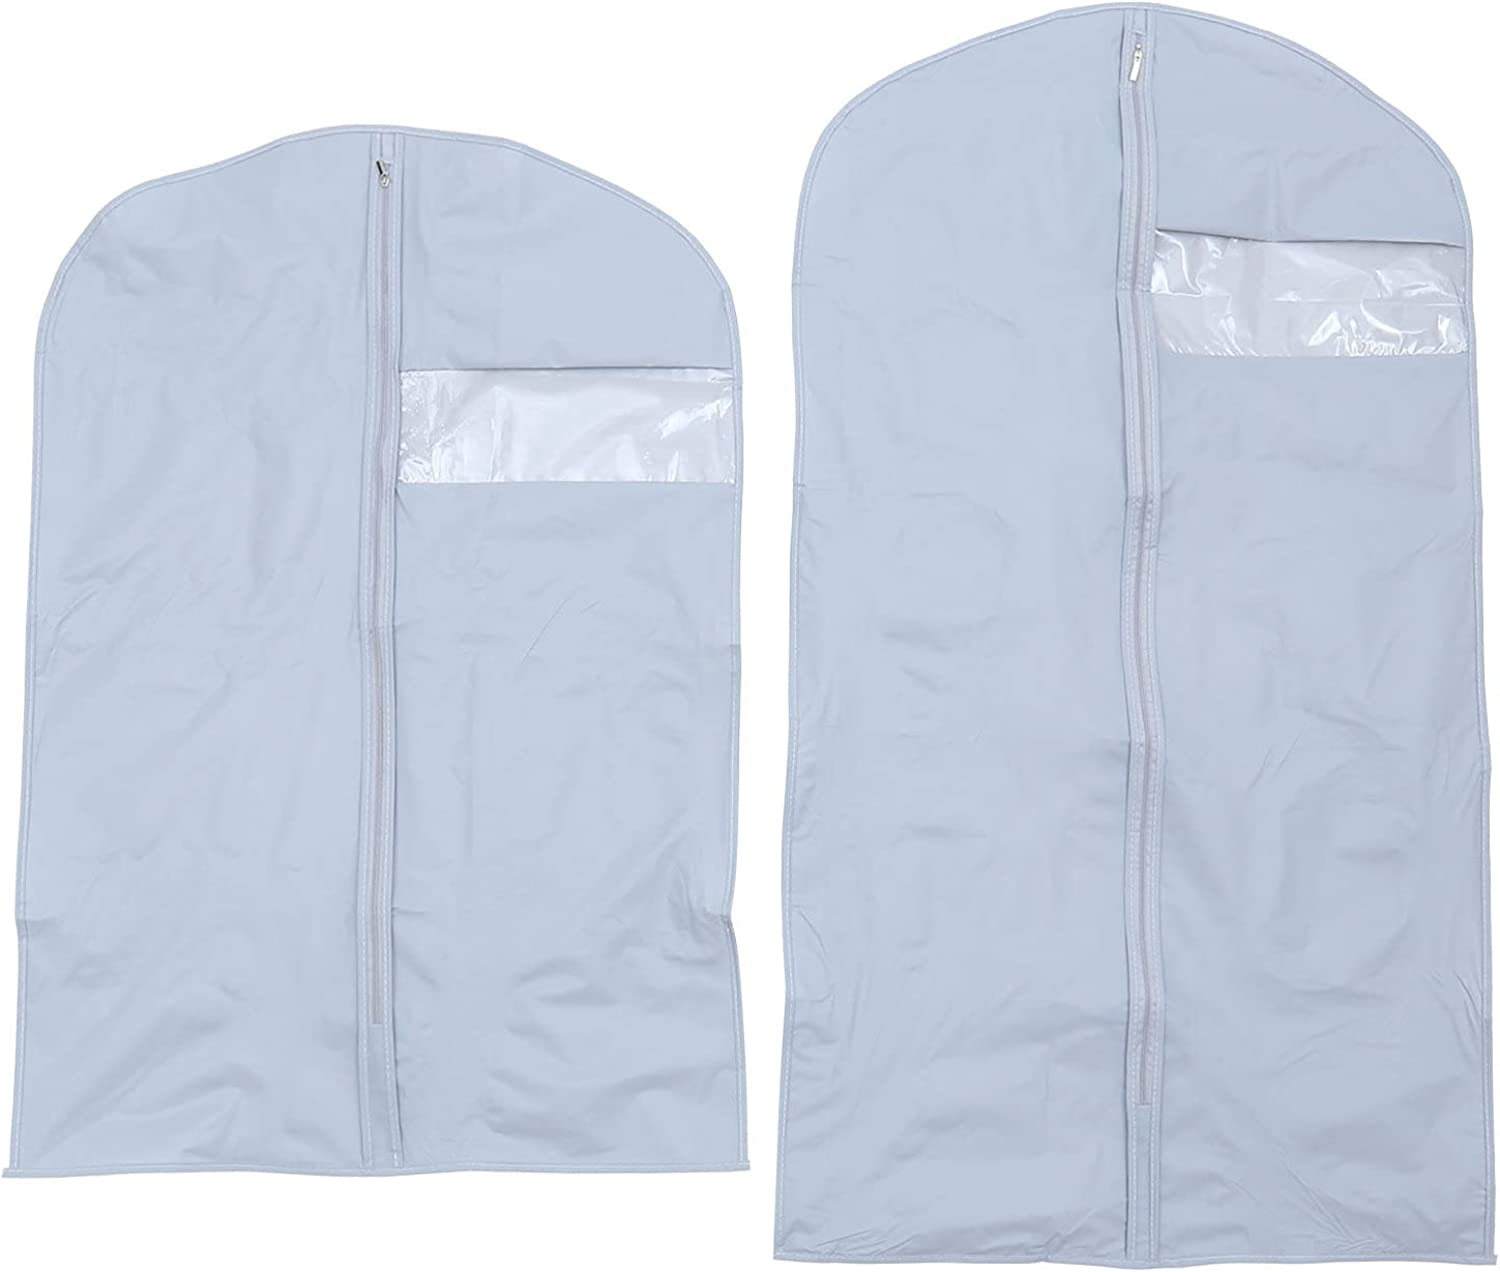 BESPORTBLE 5pcs HomeClean Garment Bag Du Zipper Breathable 67% OFF of fixed price Shipping included Full